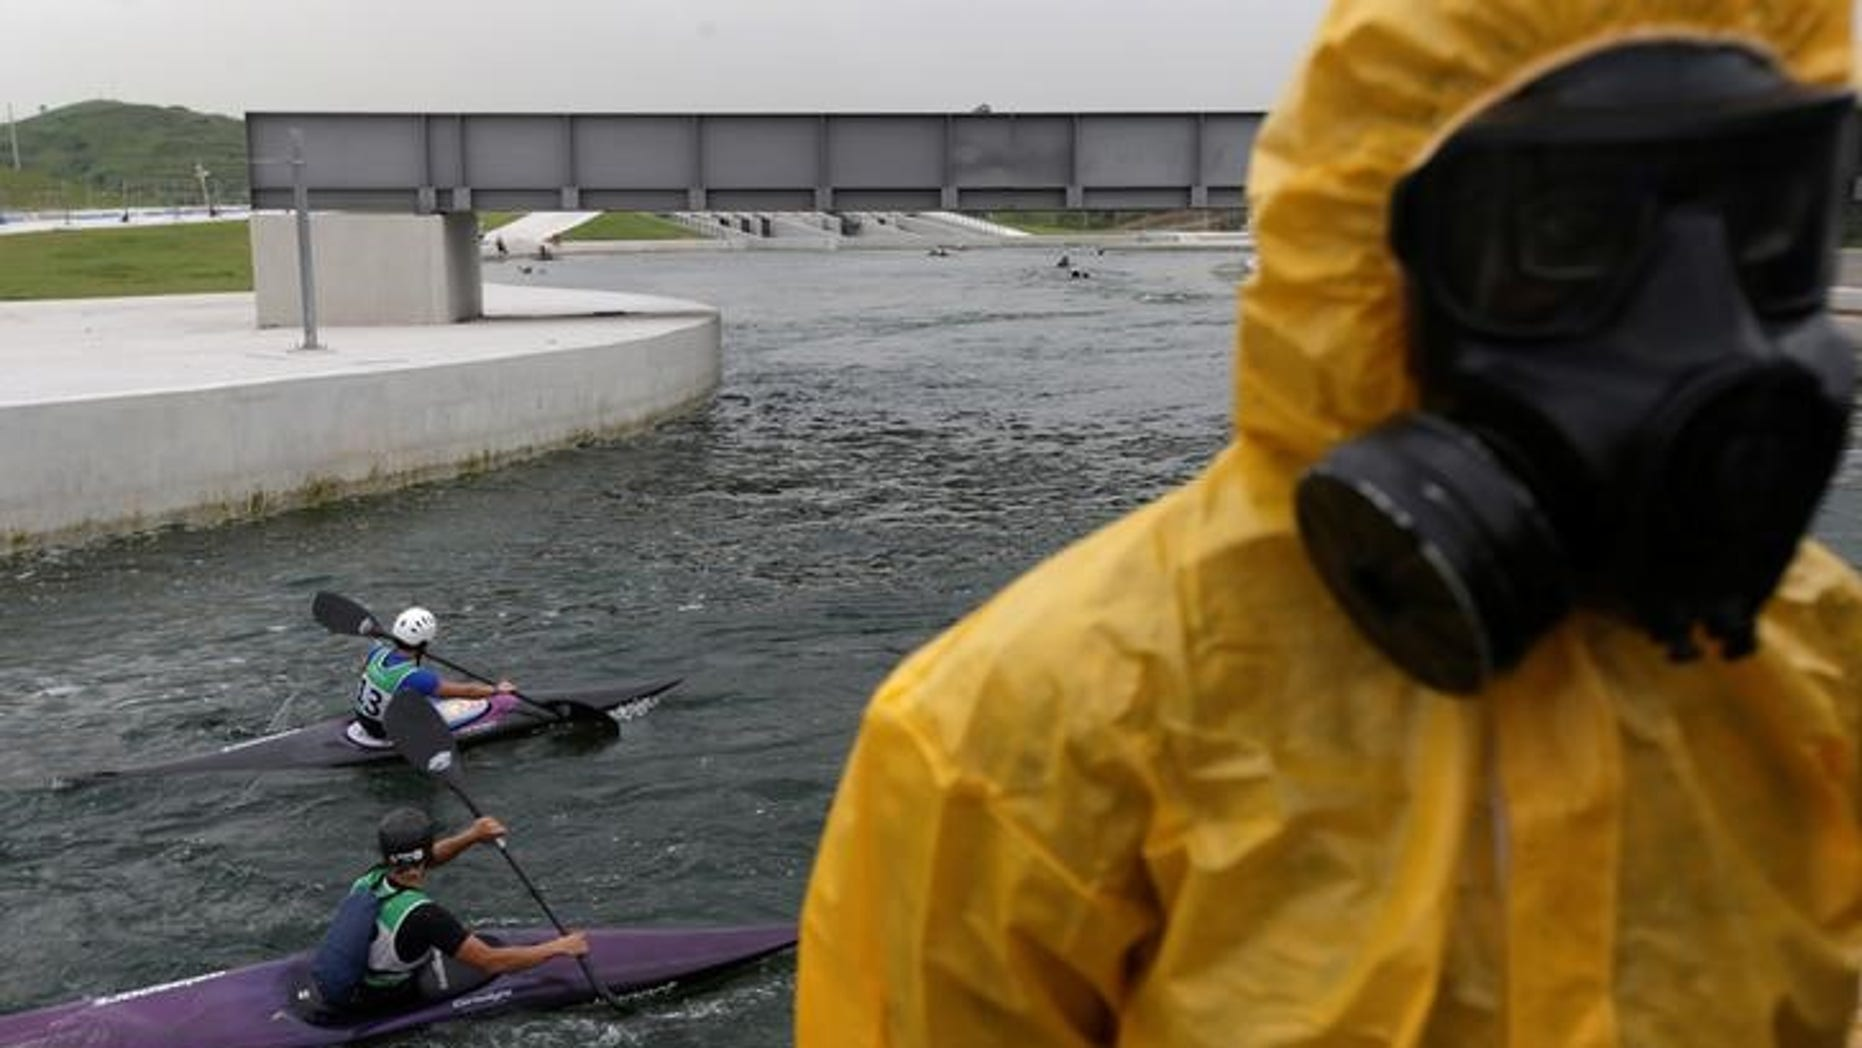 Athletes attend a training session at 2016 Rio Olympics Games' Canoe Slalom Circuit as Brazilian Army soldiers take part in a simulation of decontamination of multiple victims during a a training in Rio de Janeiro